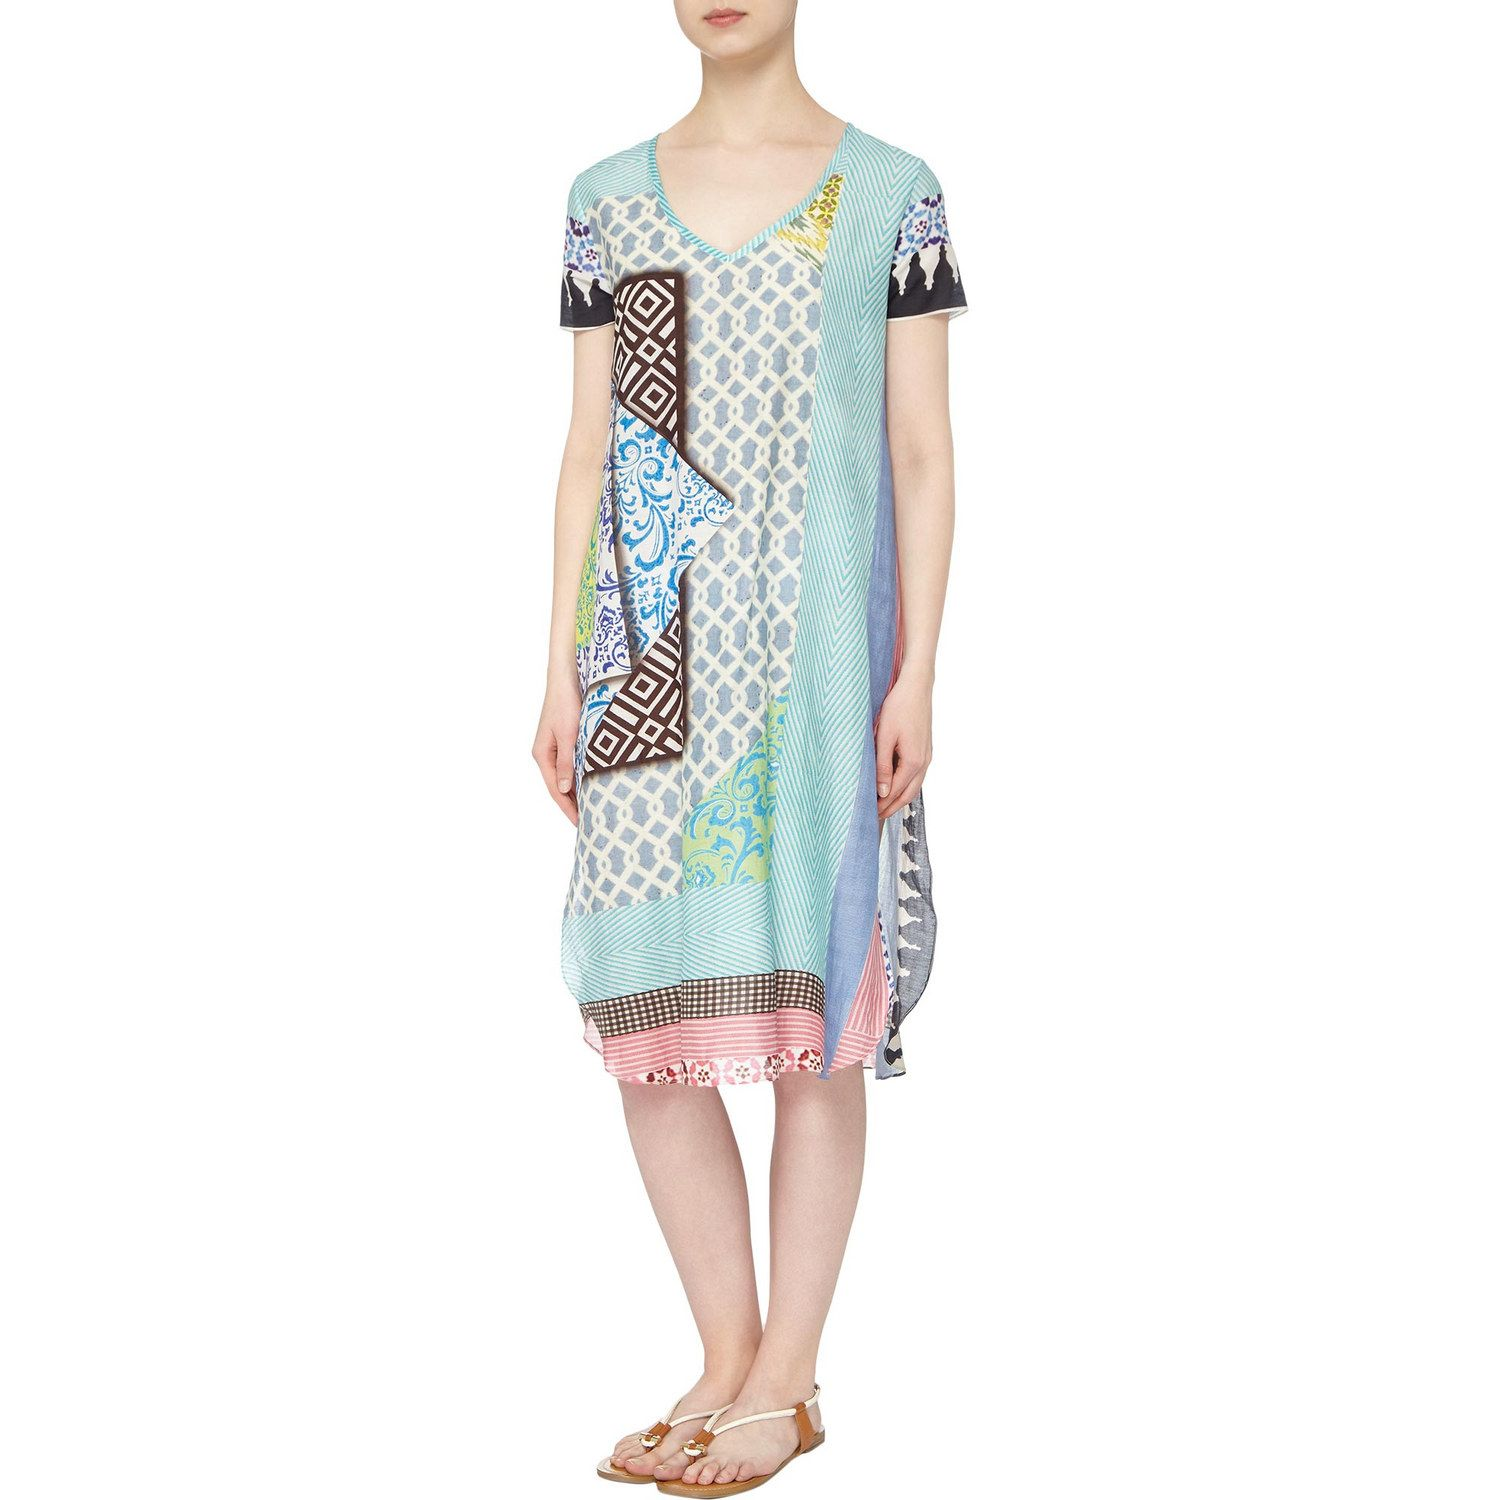 On The Tiles Tunic Dress Cover Up Cotton Tunic Dress Dress Cover Summer Tunic Dress [ 1500 x 1500 Pixel ]